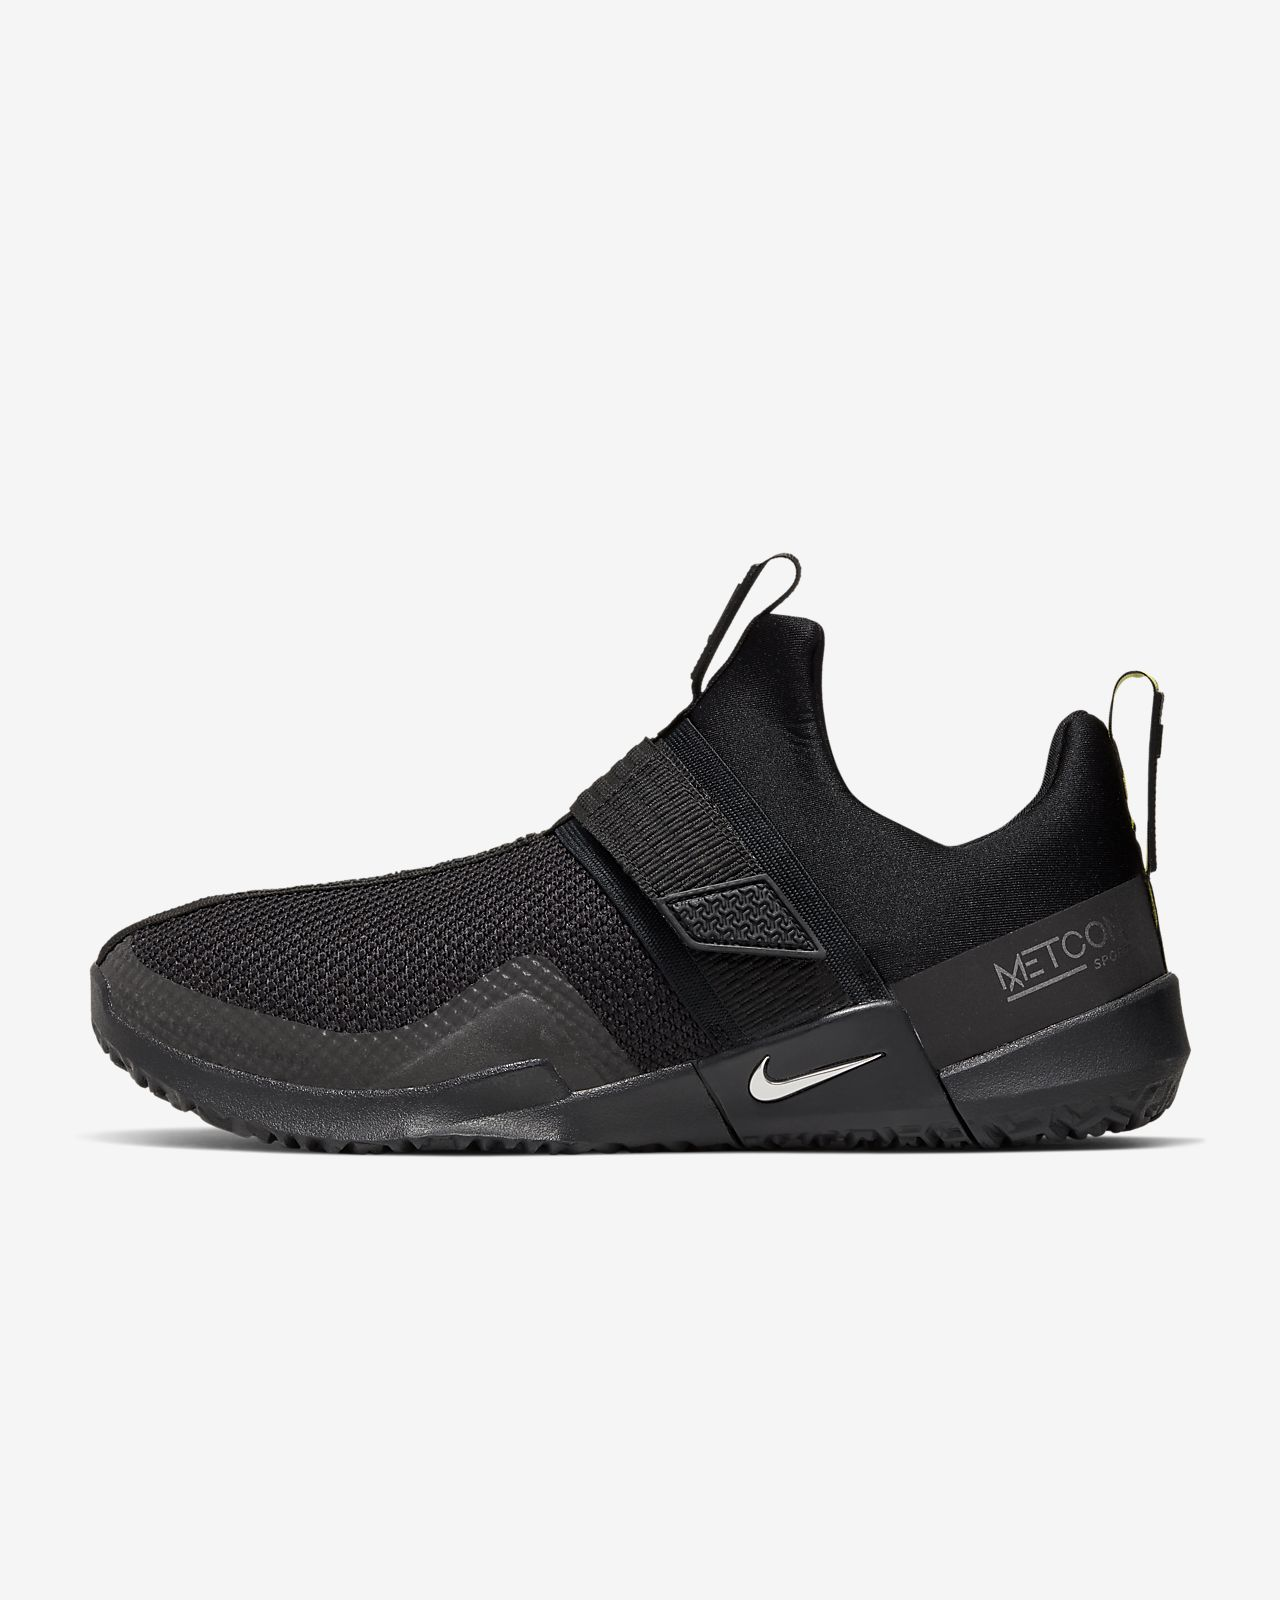 Nike Metcon Sport Russell Wilson Men's Training Shoe